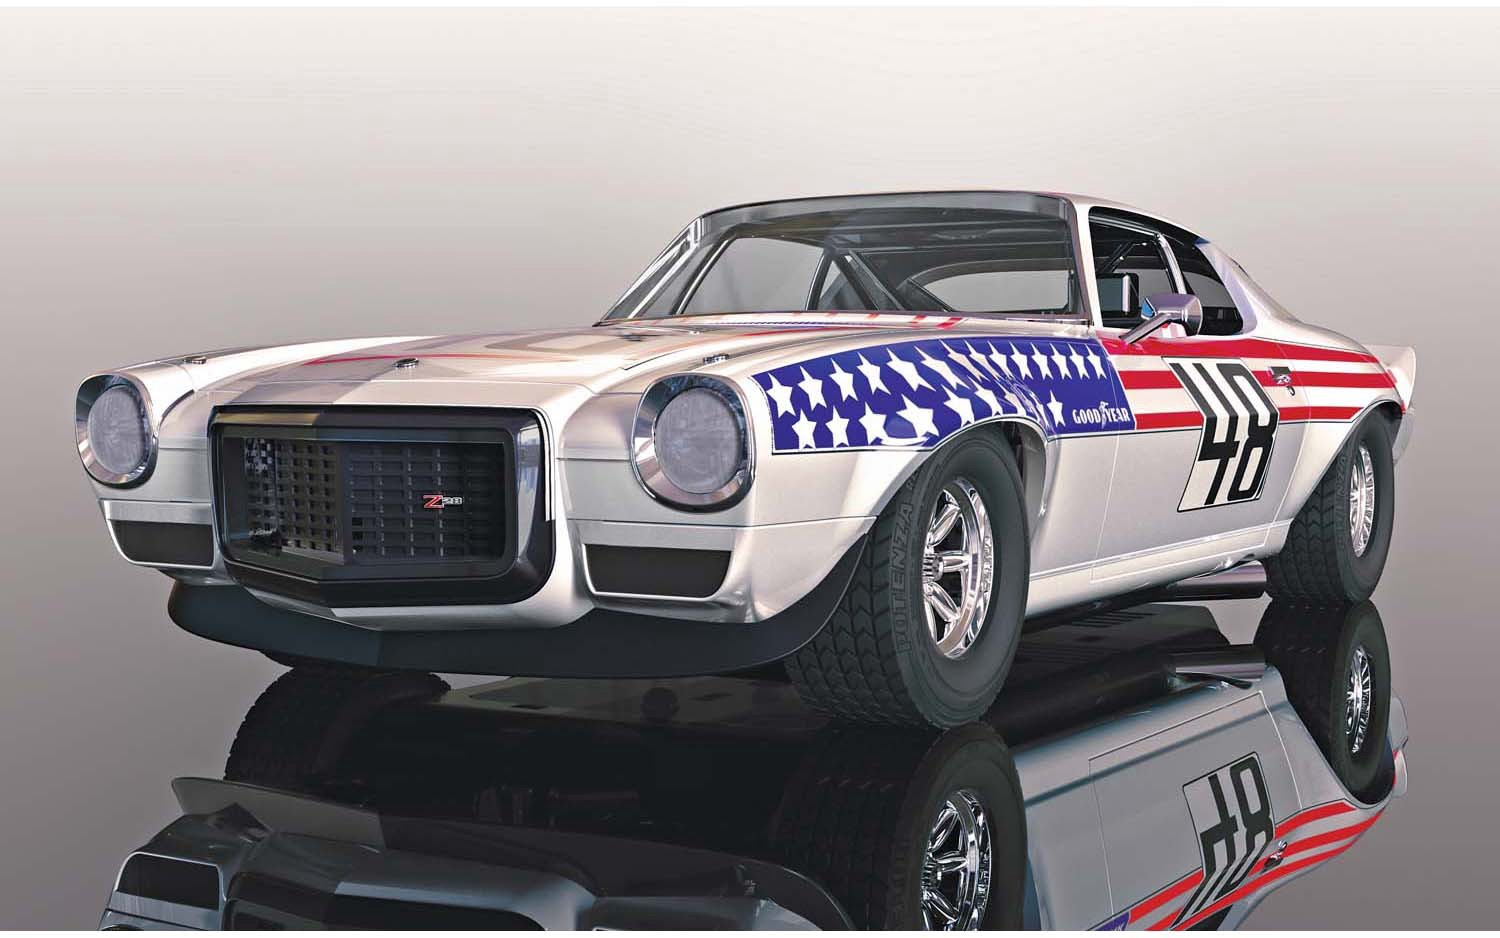 Scalextric #C4043 1/32 1970 Chevrolet Camaro Stars and Stripes